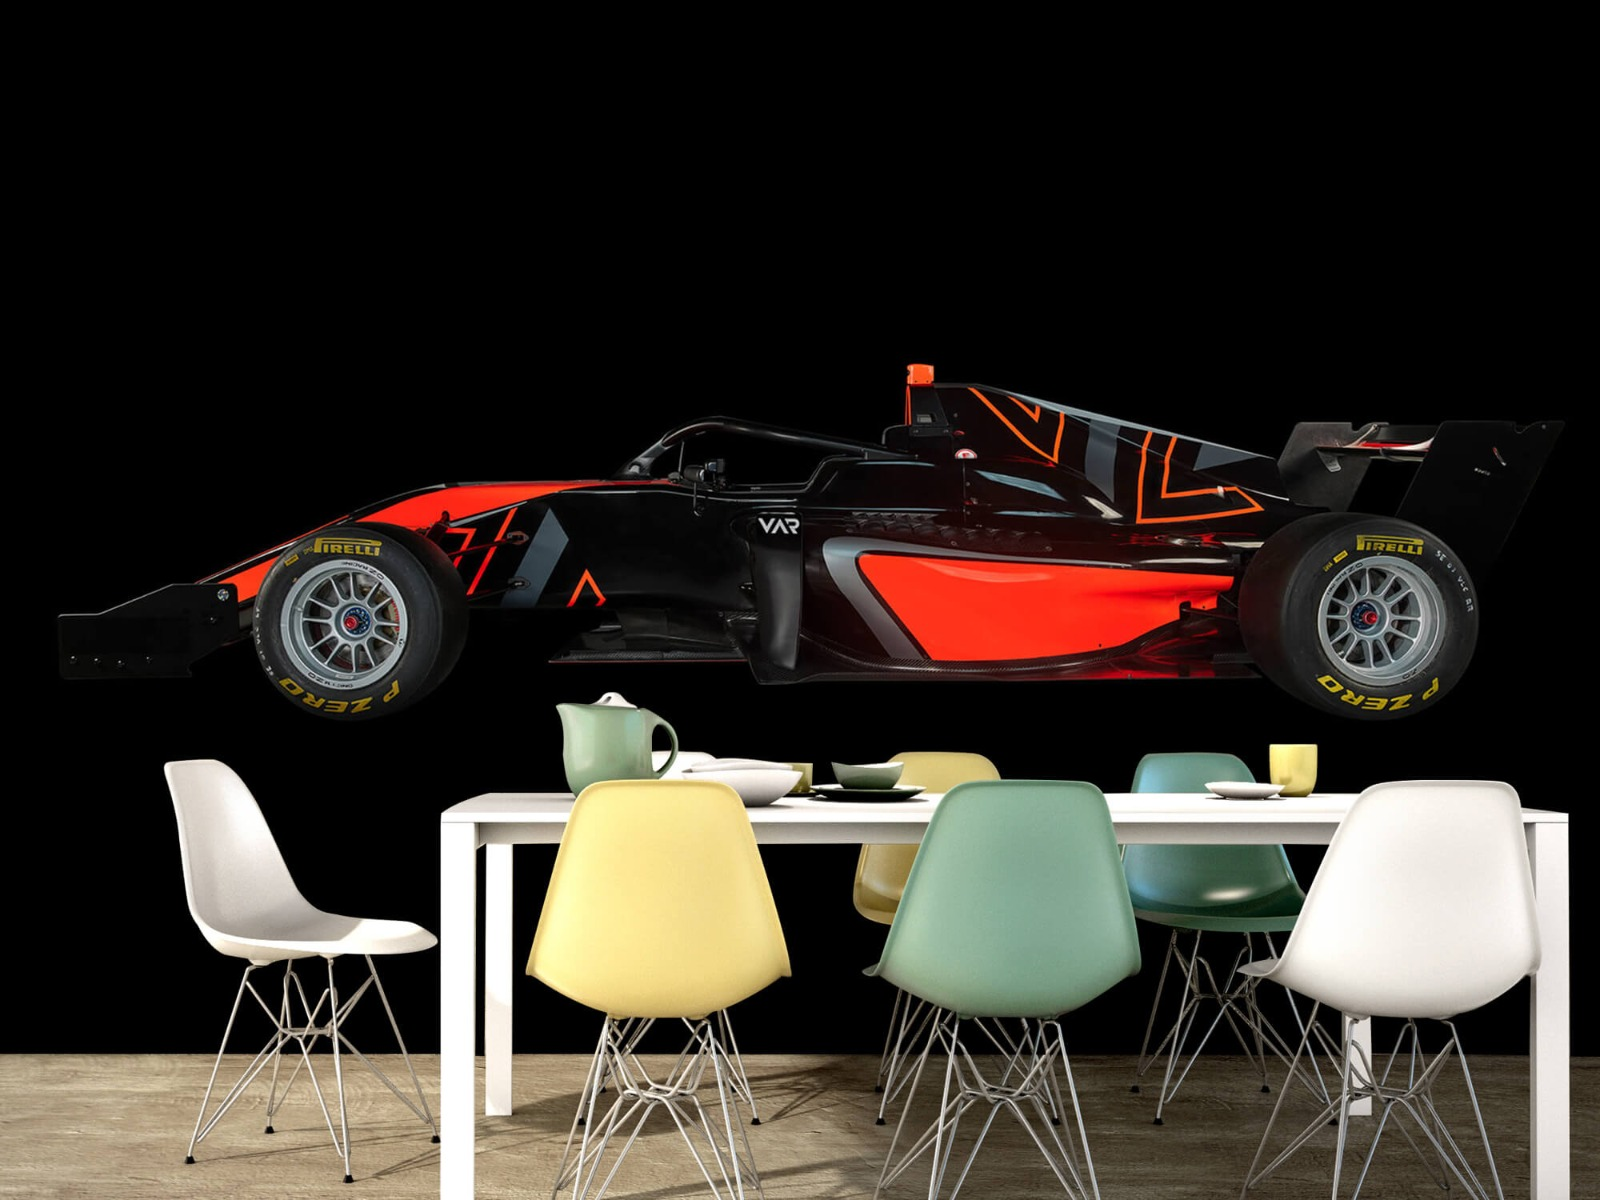 Sportauto's - Formule 3 - Lower side view - dark - Tienerkamer 16